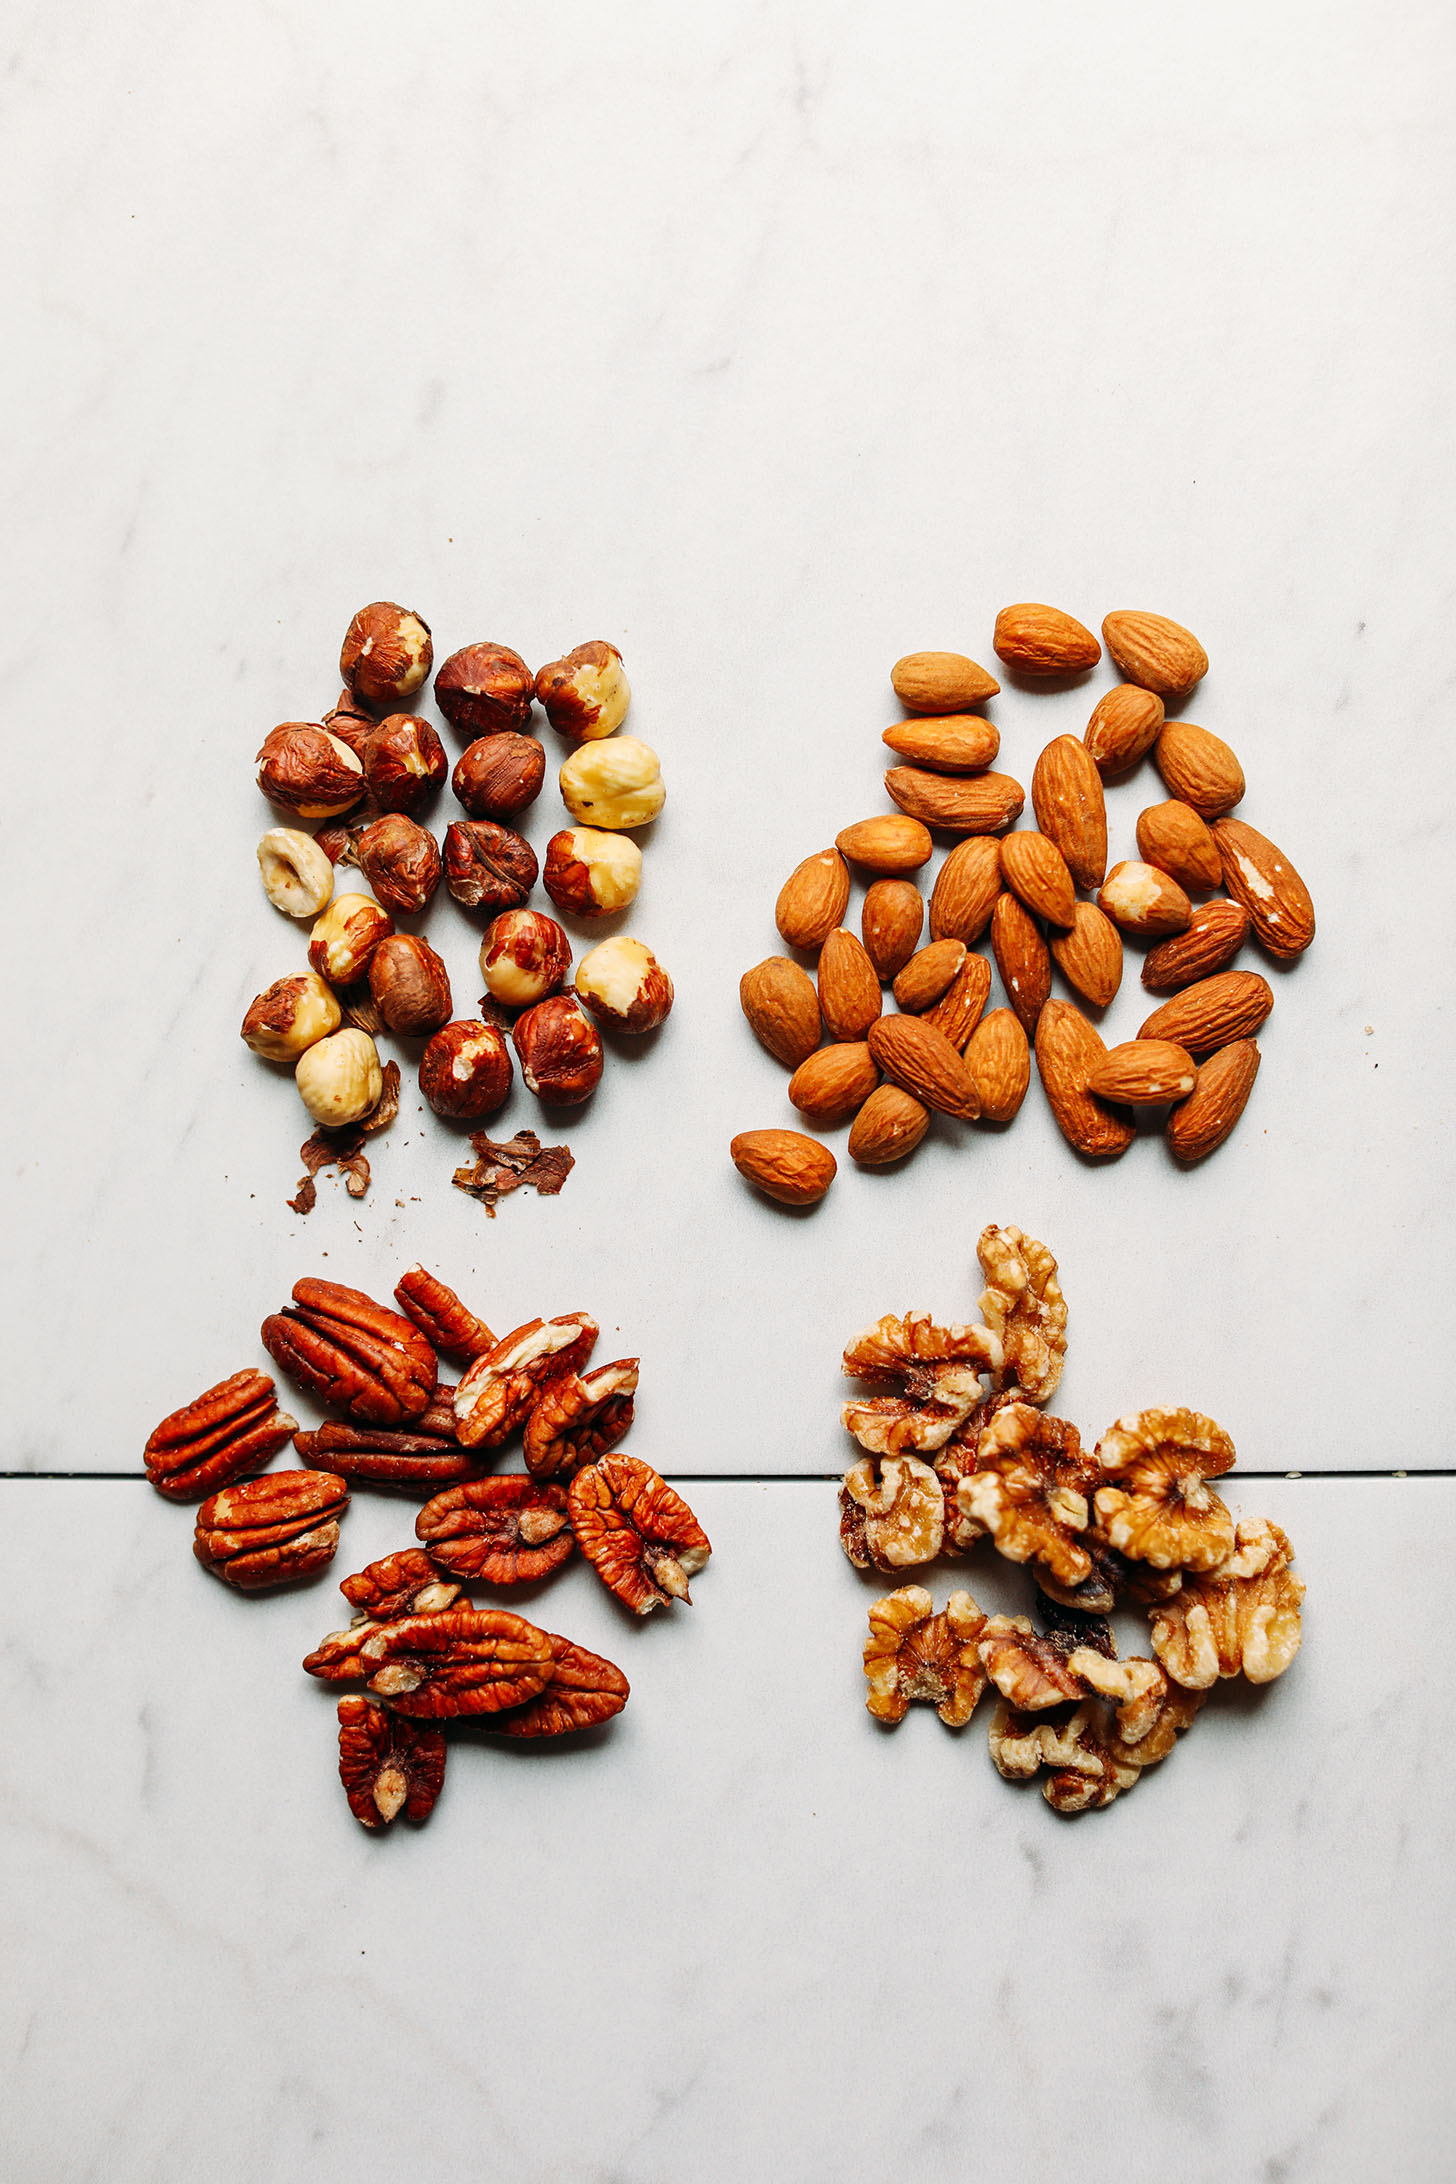 Walnuts, pecans, almonds, and hazelnuts on a marble background